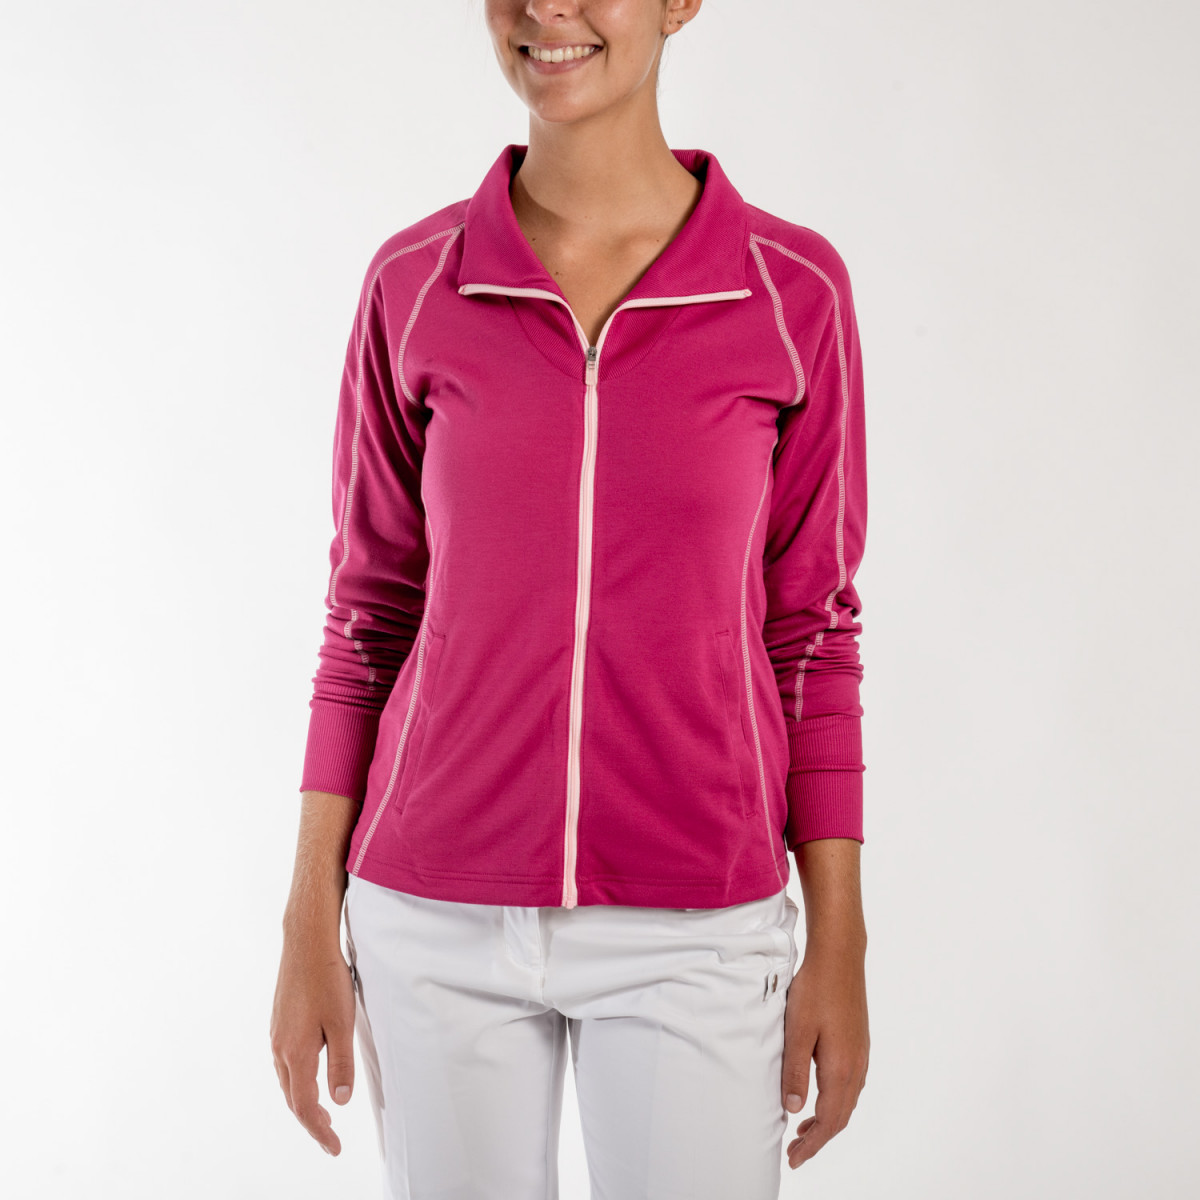 CAMPERA ADIDAS CONTRAST STITCHED FULL-ZIP